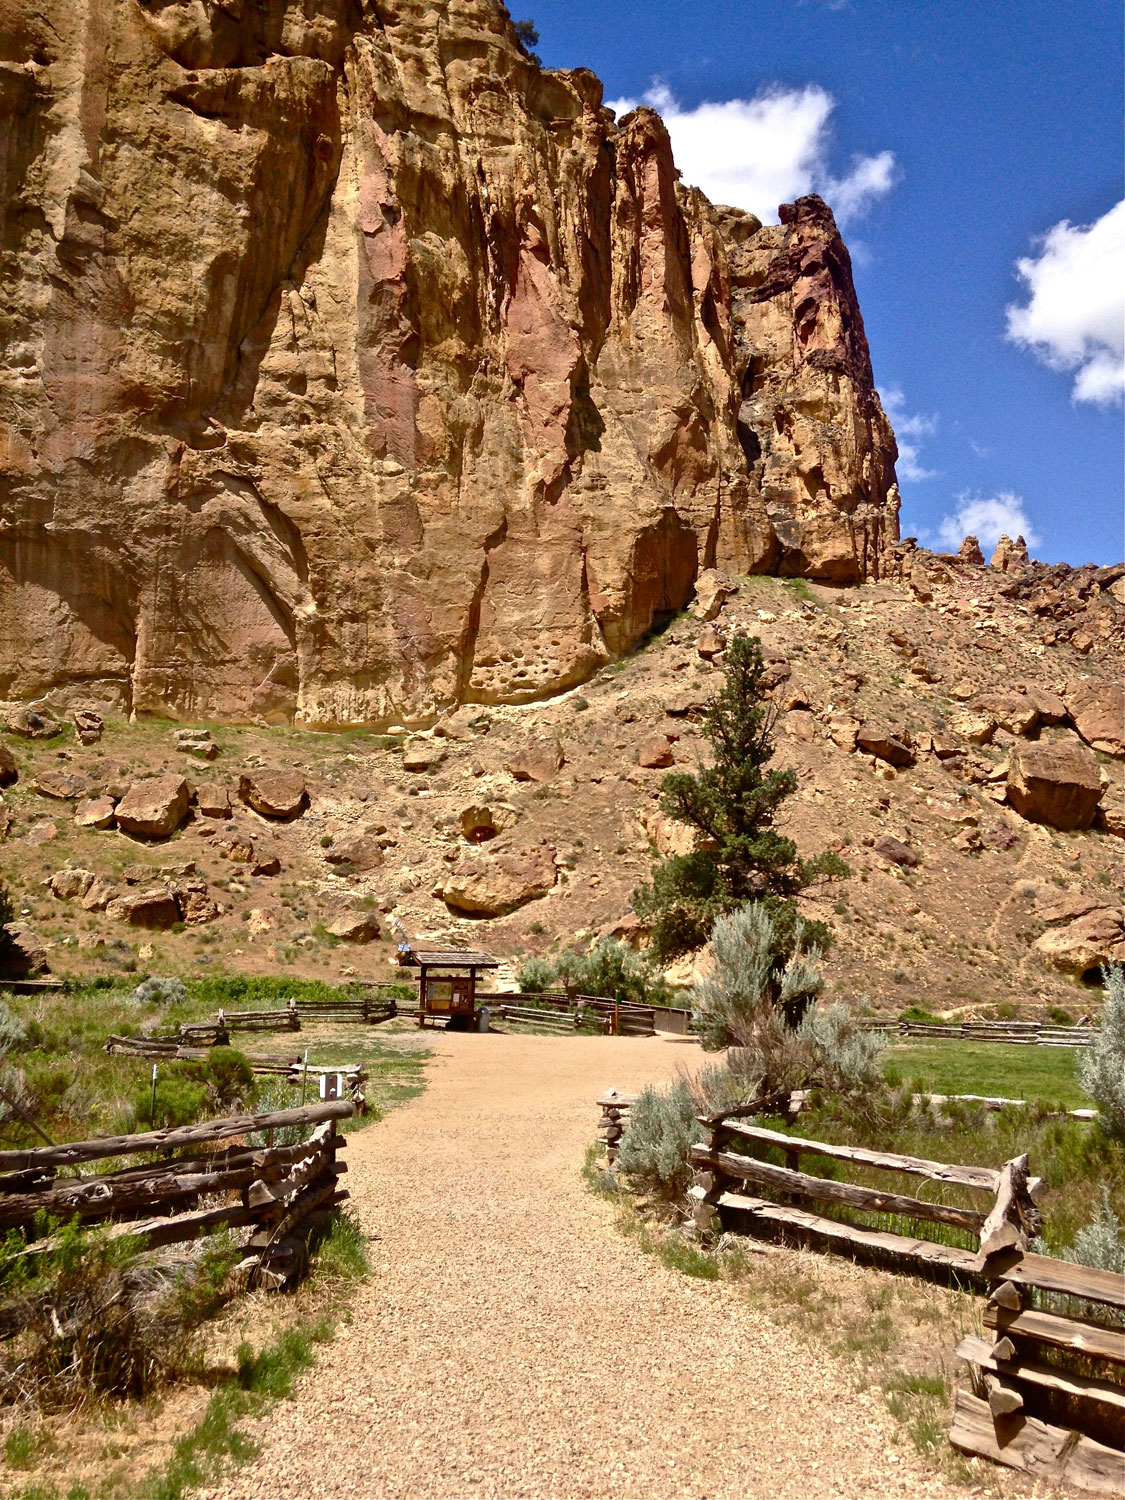 The Chute Trail ends after it joins up with the Canyon Trail just before the bridge crossing the Crooked River Trail at Smith Rock State Park.